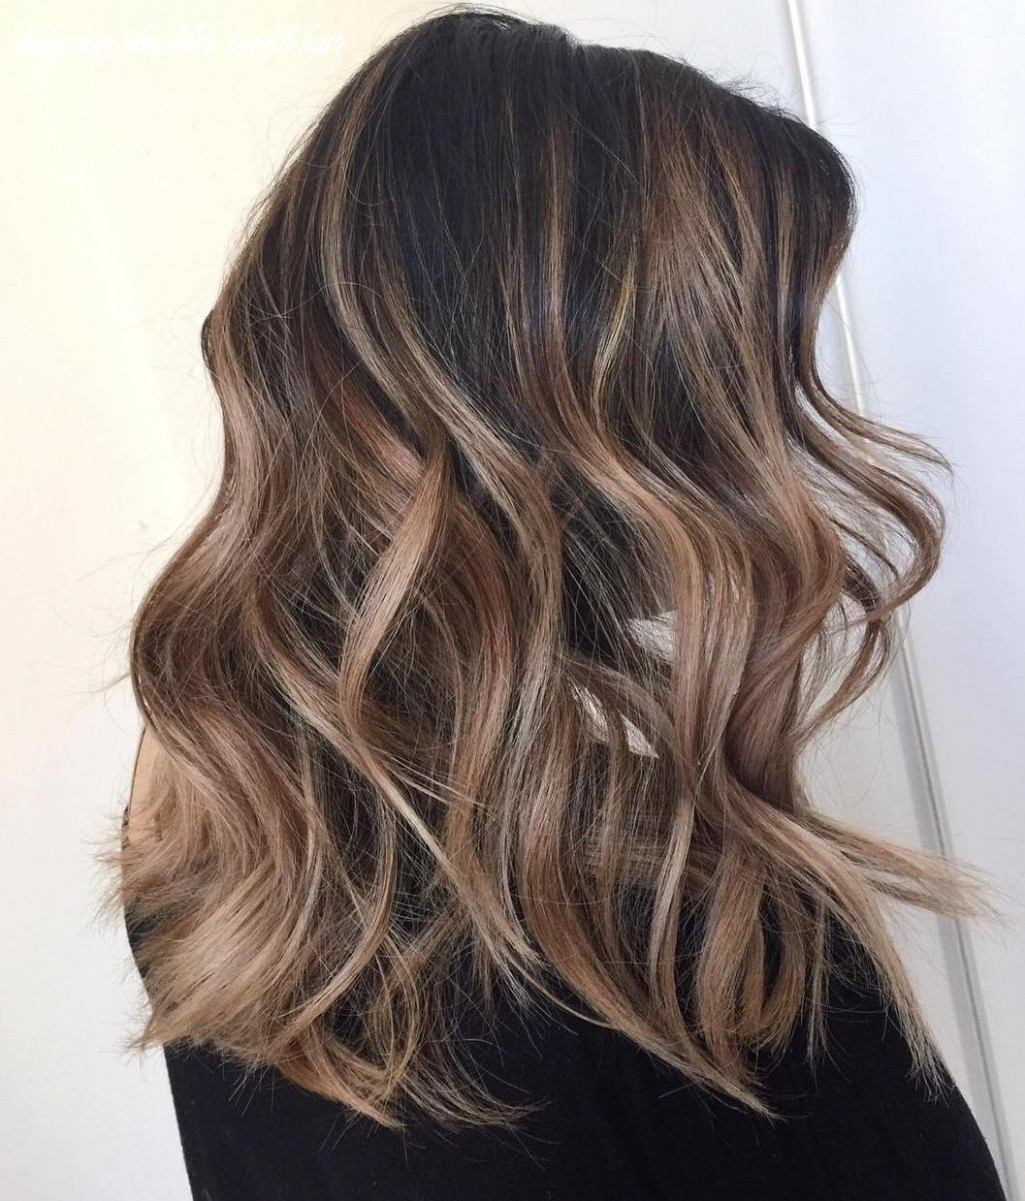 10 hottest balayage hair ideas to try in 10 hair adviser balayage shoulder length hair